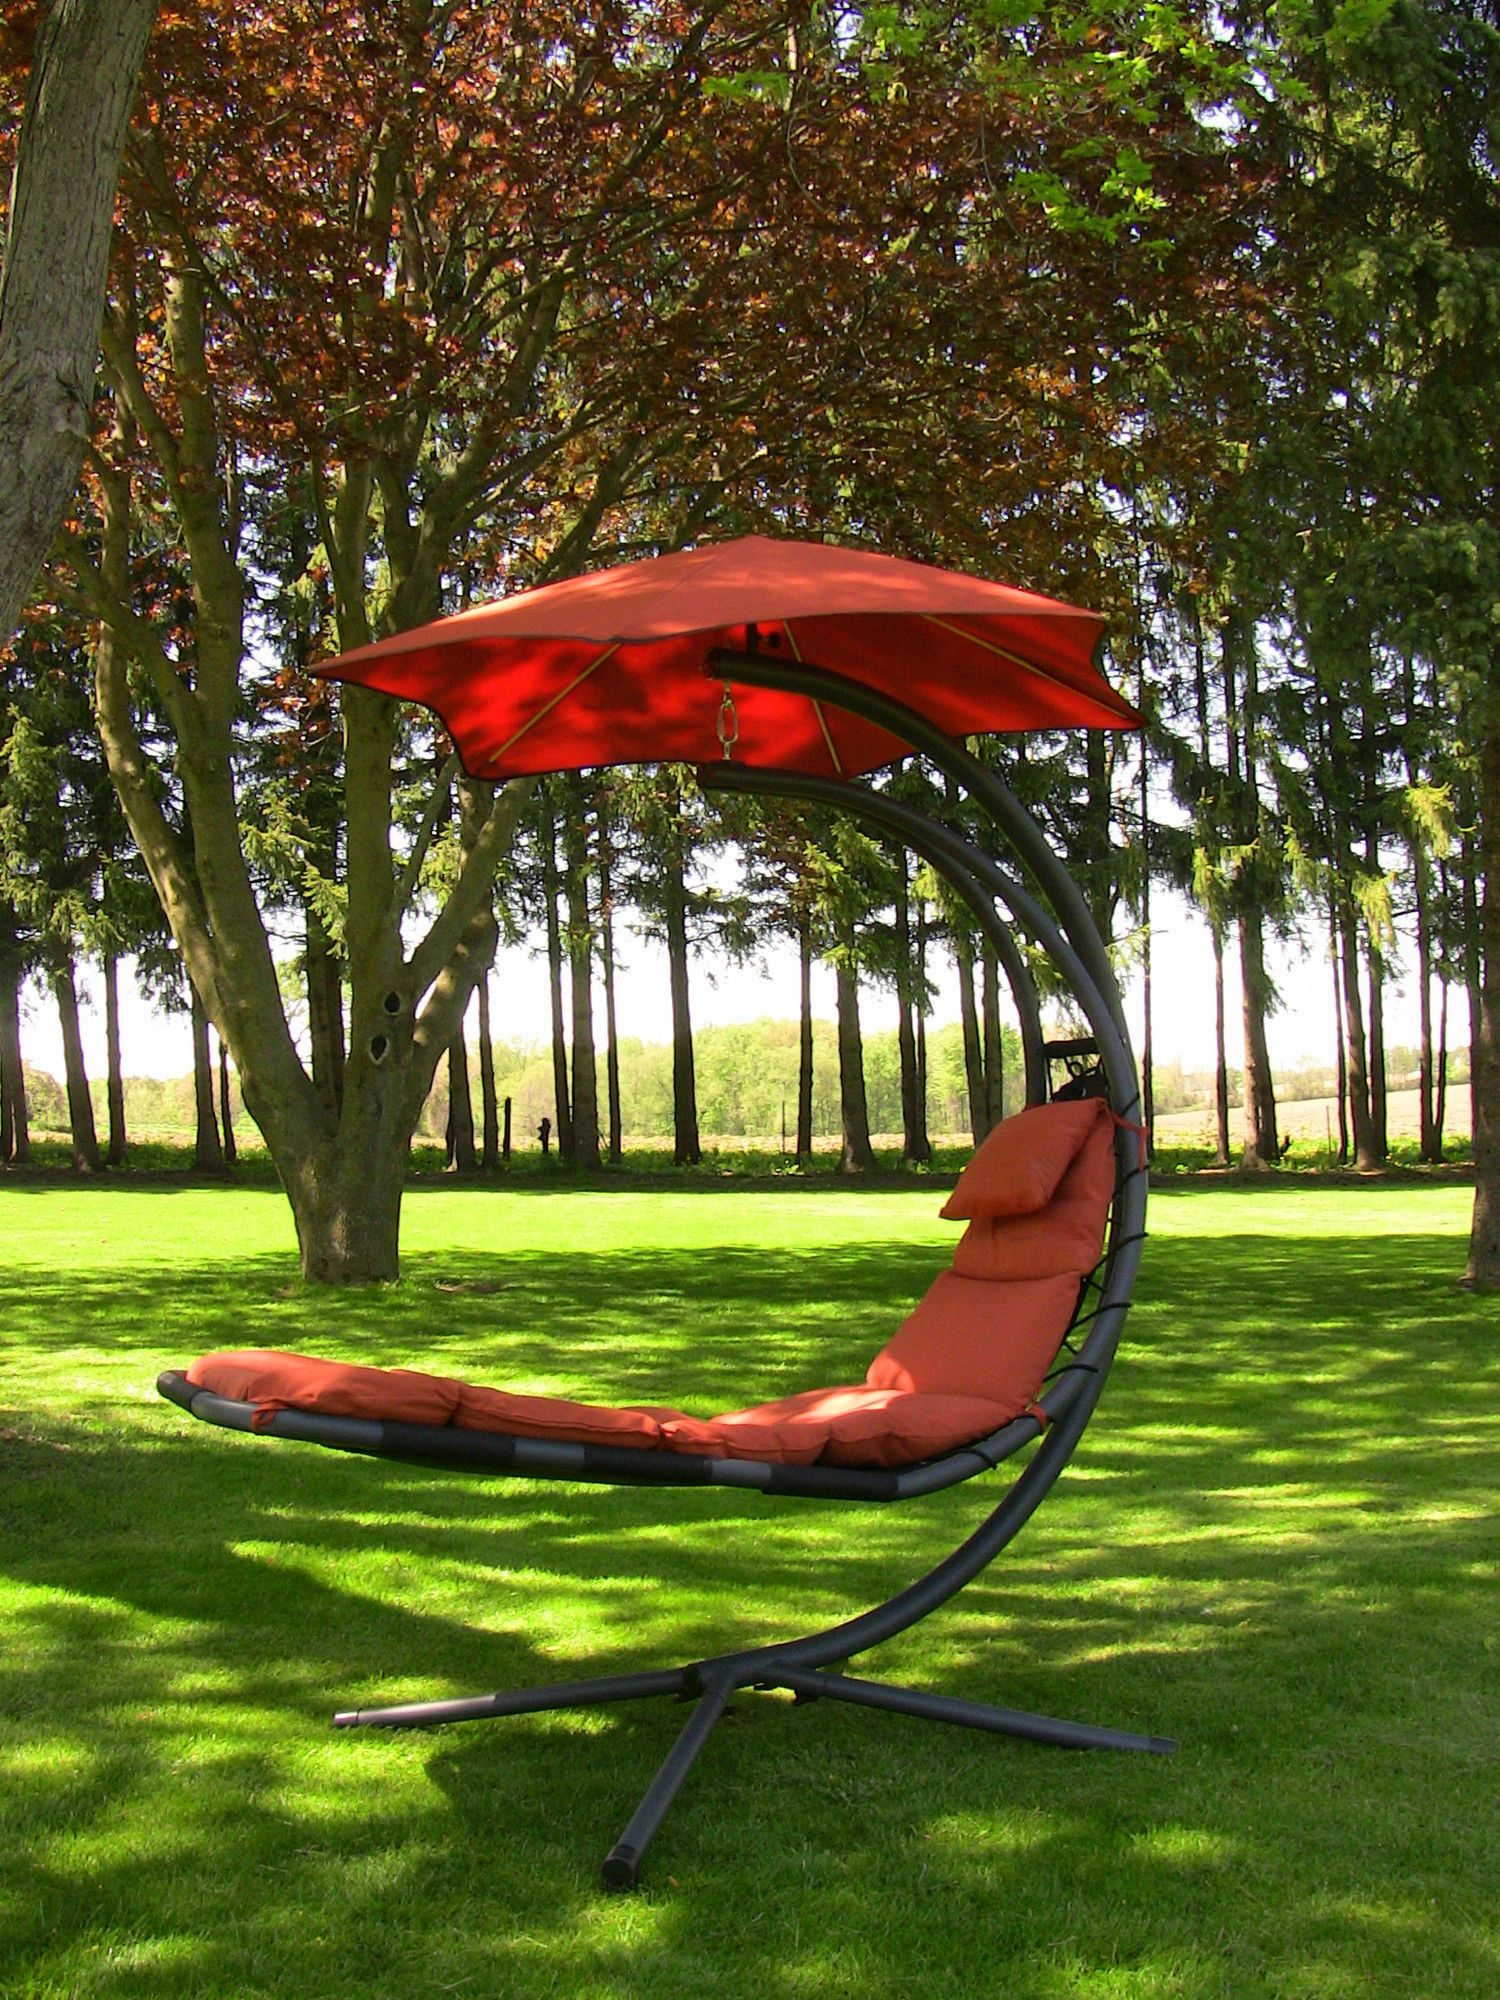 Dream Rocker Hammock Chair Swing Plan Should Have Bought This When I Had The Chance Sold Out